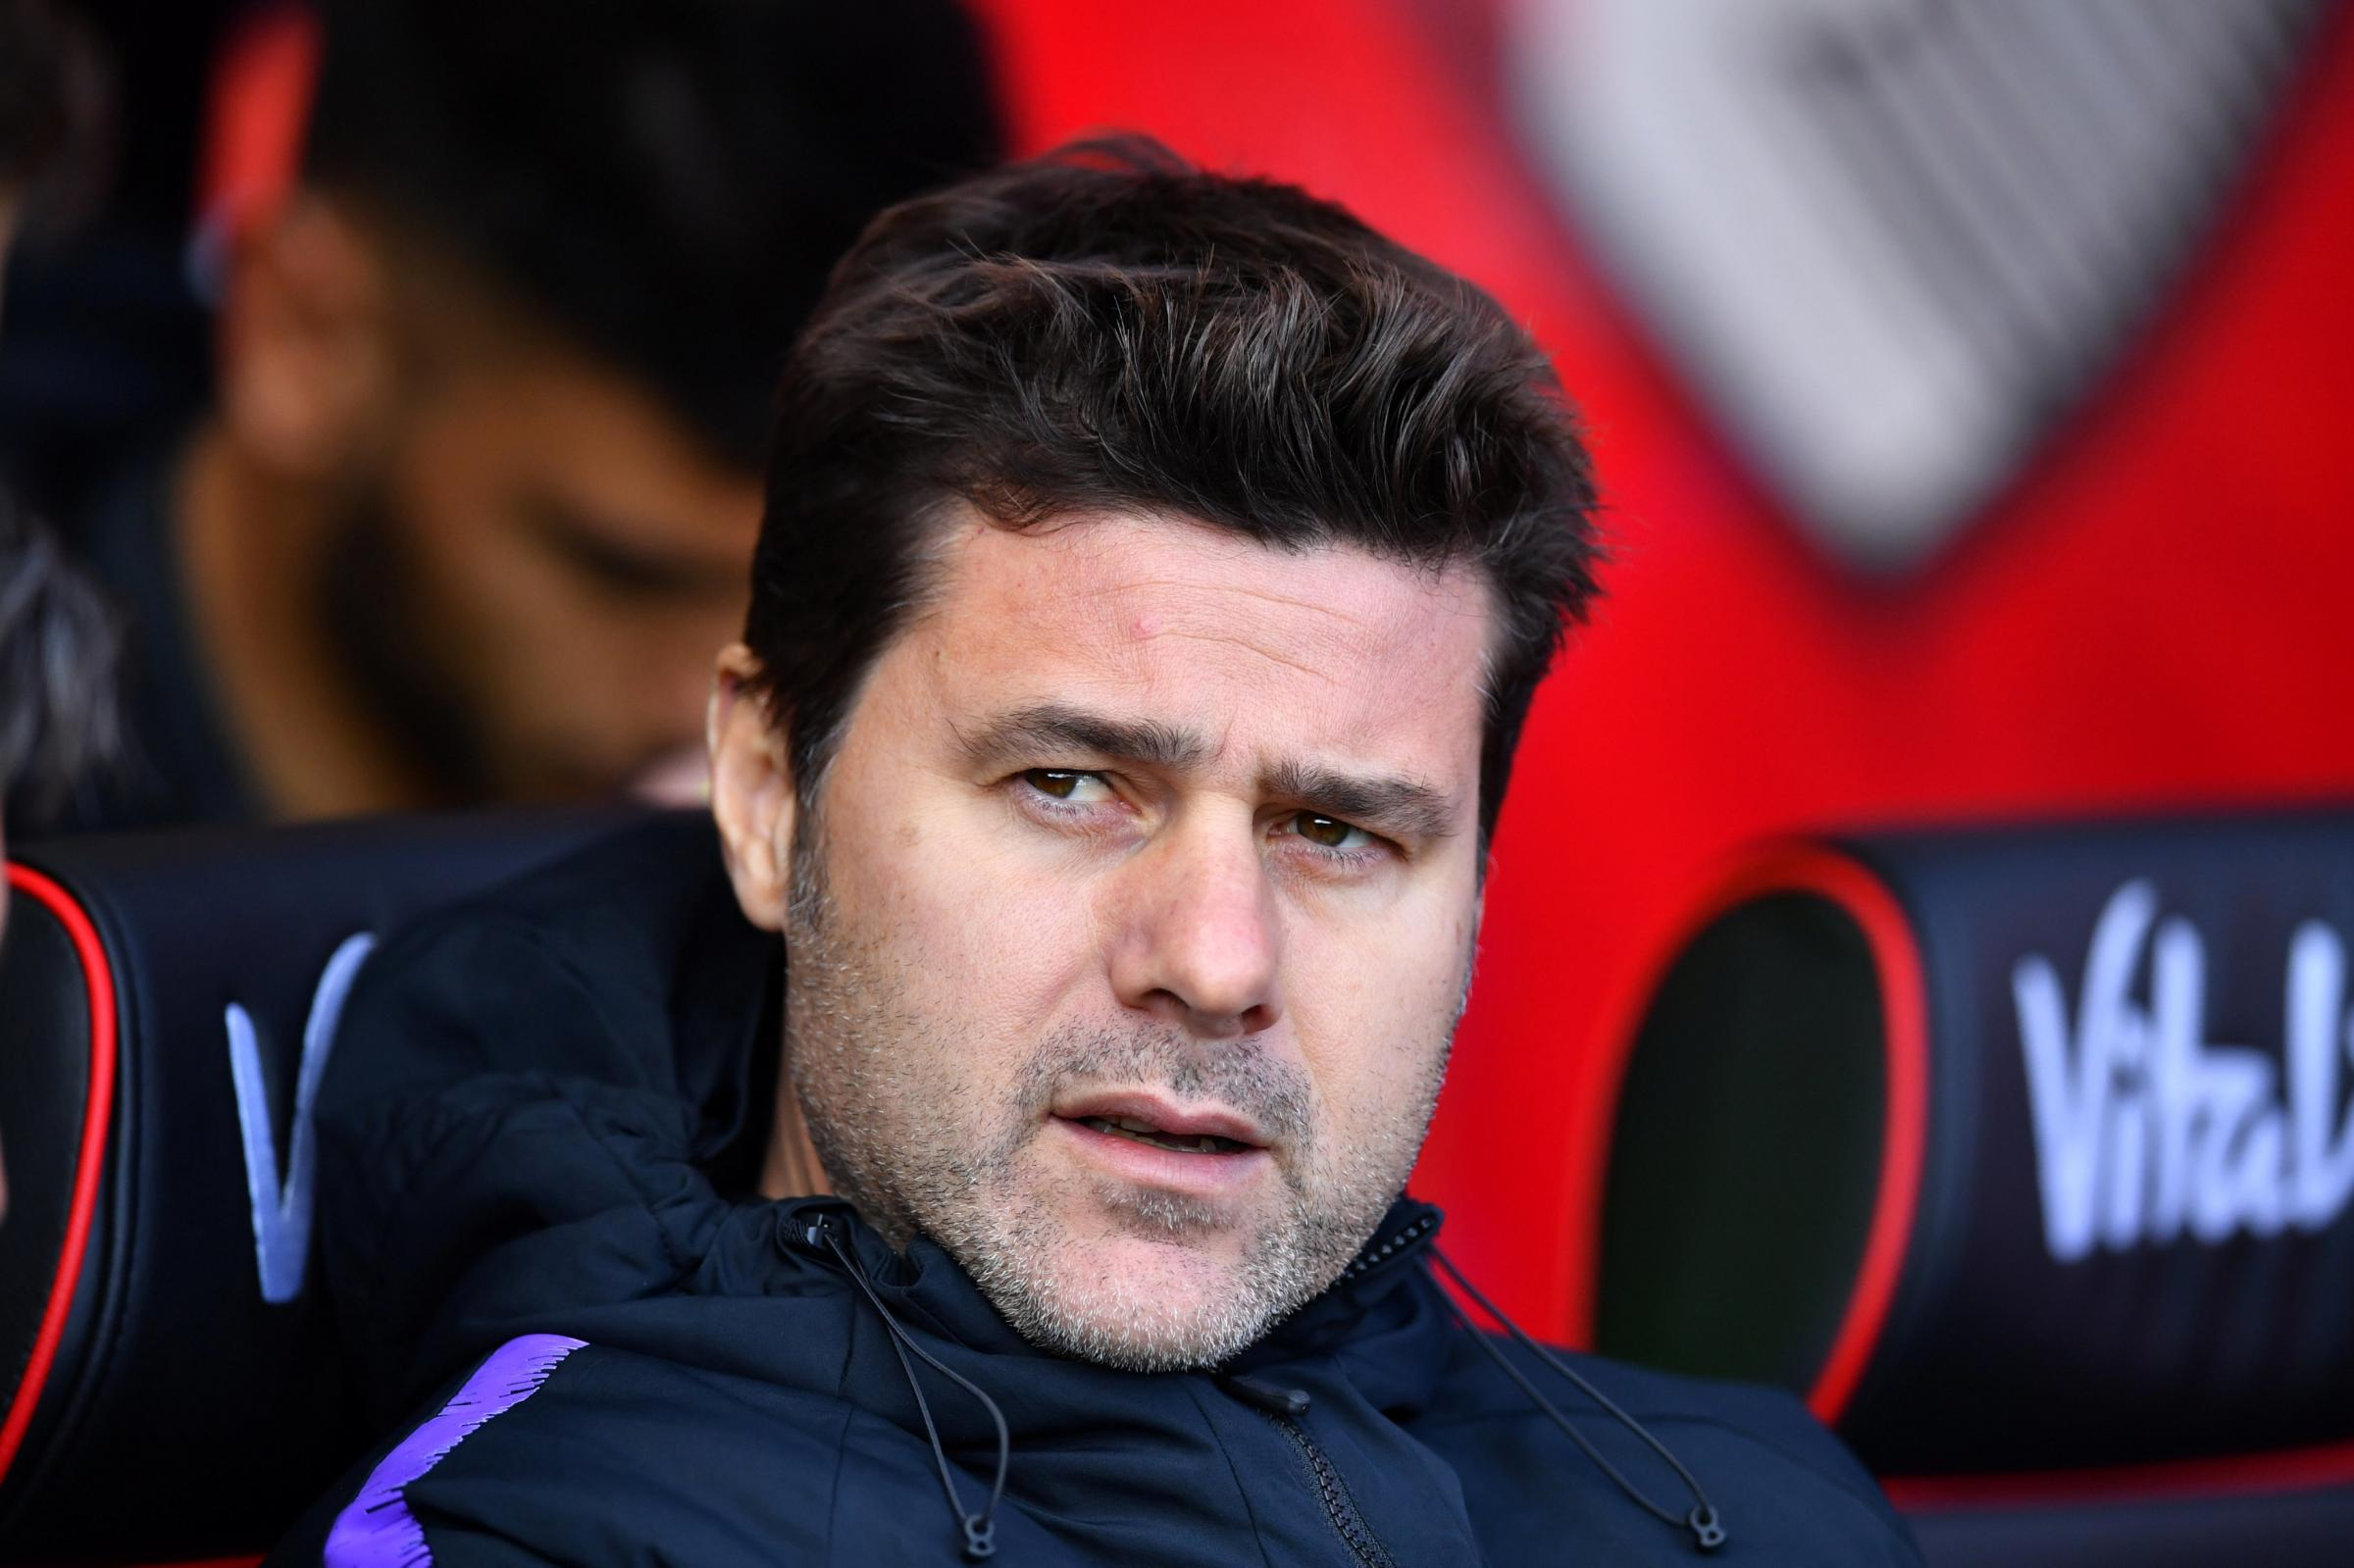 The Spurs boss has experienced a dramatic cup semi-final second leg before. Picture: Action Images